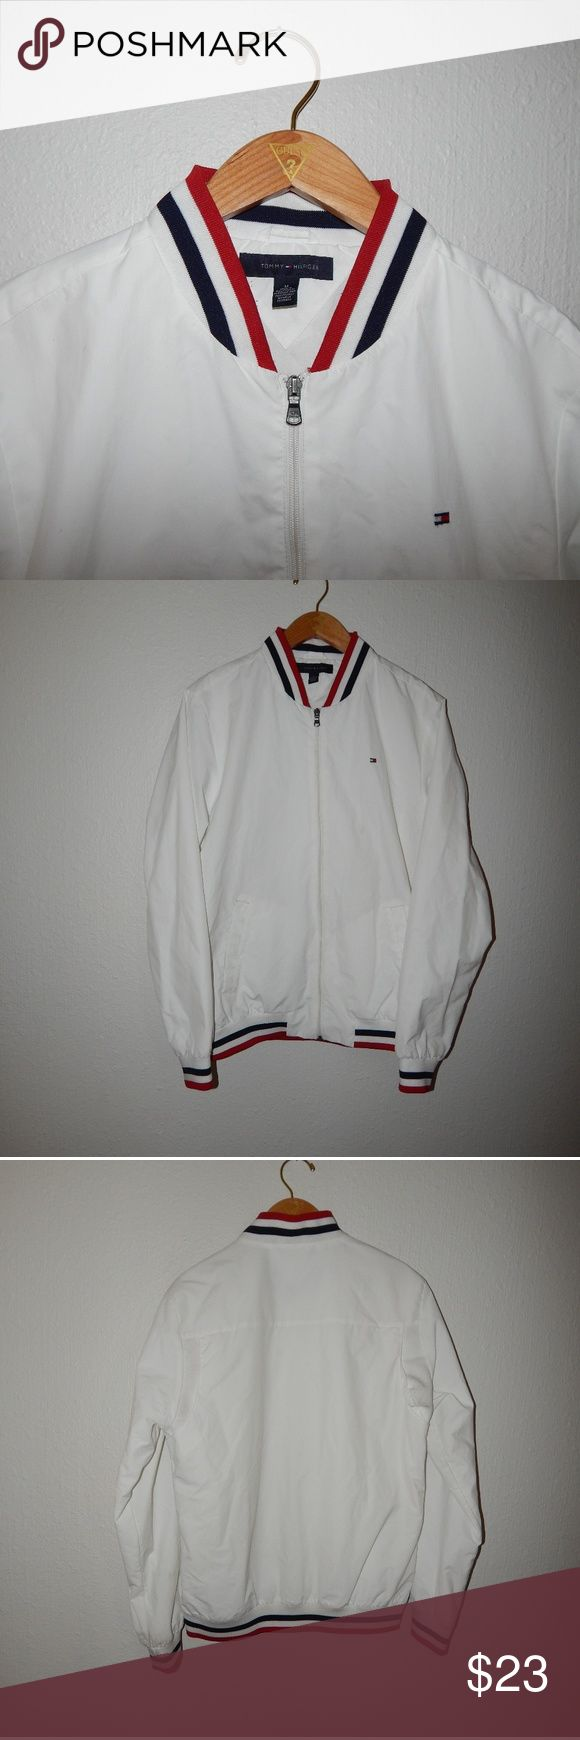 VTG Tommy Hilfiger Bomber Jacket White Tommy Hilfiger bomber jacket in 9/10 condition no major flaws just needs thrown in the washer. Men's size Medium message for measurements. Always willing to do lower pricing on bundle deals. Same day shipping. Tommy Hilfiger Jackets & Coats Windbreakers